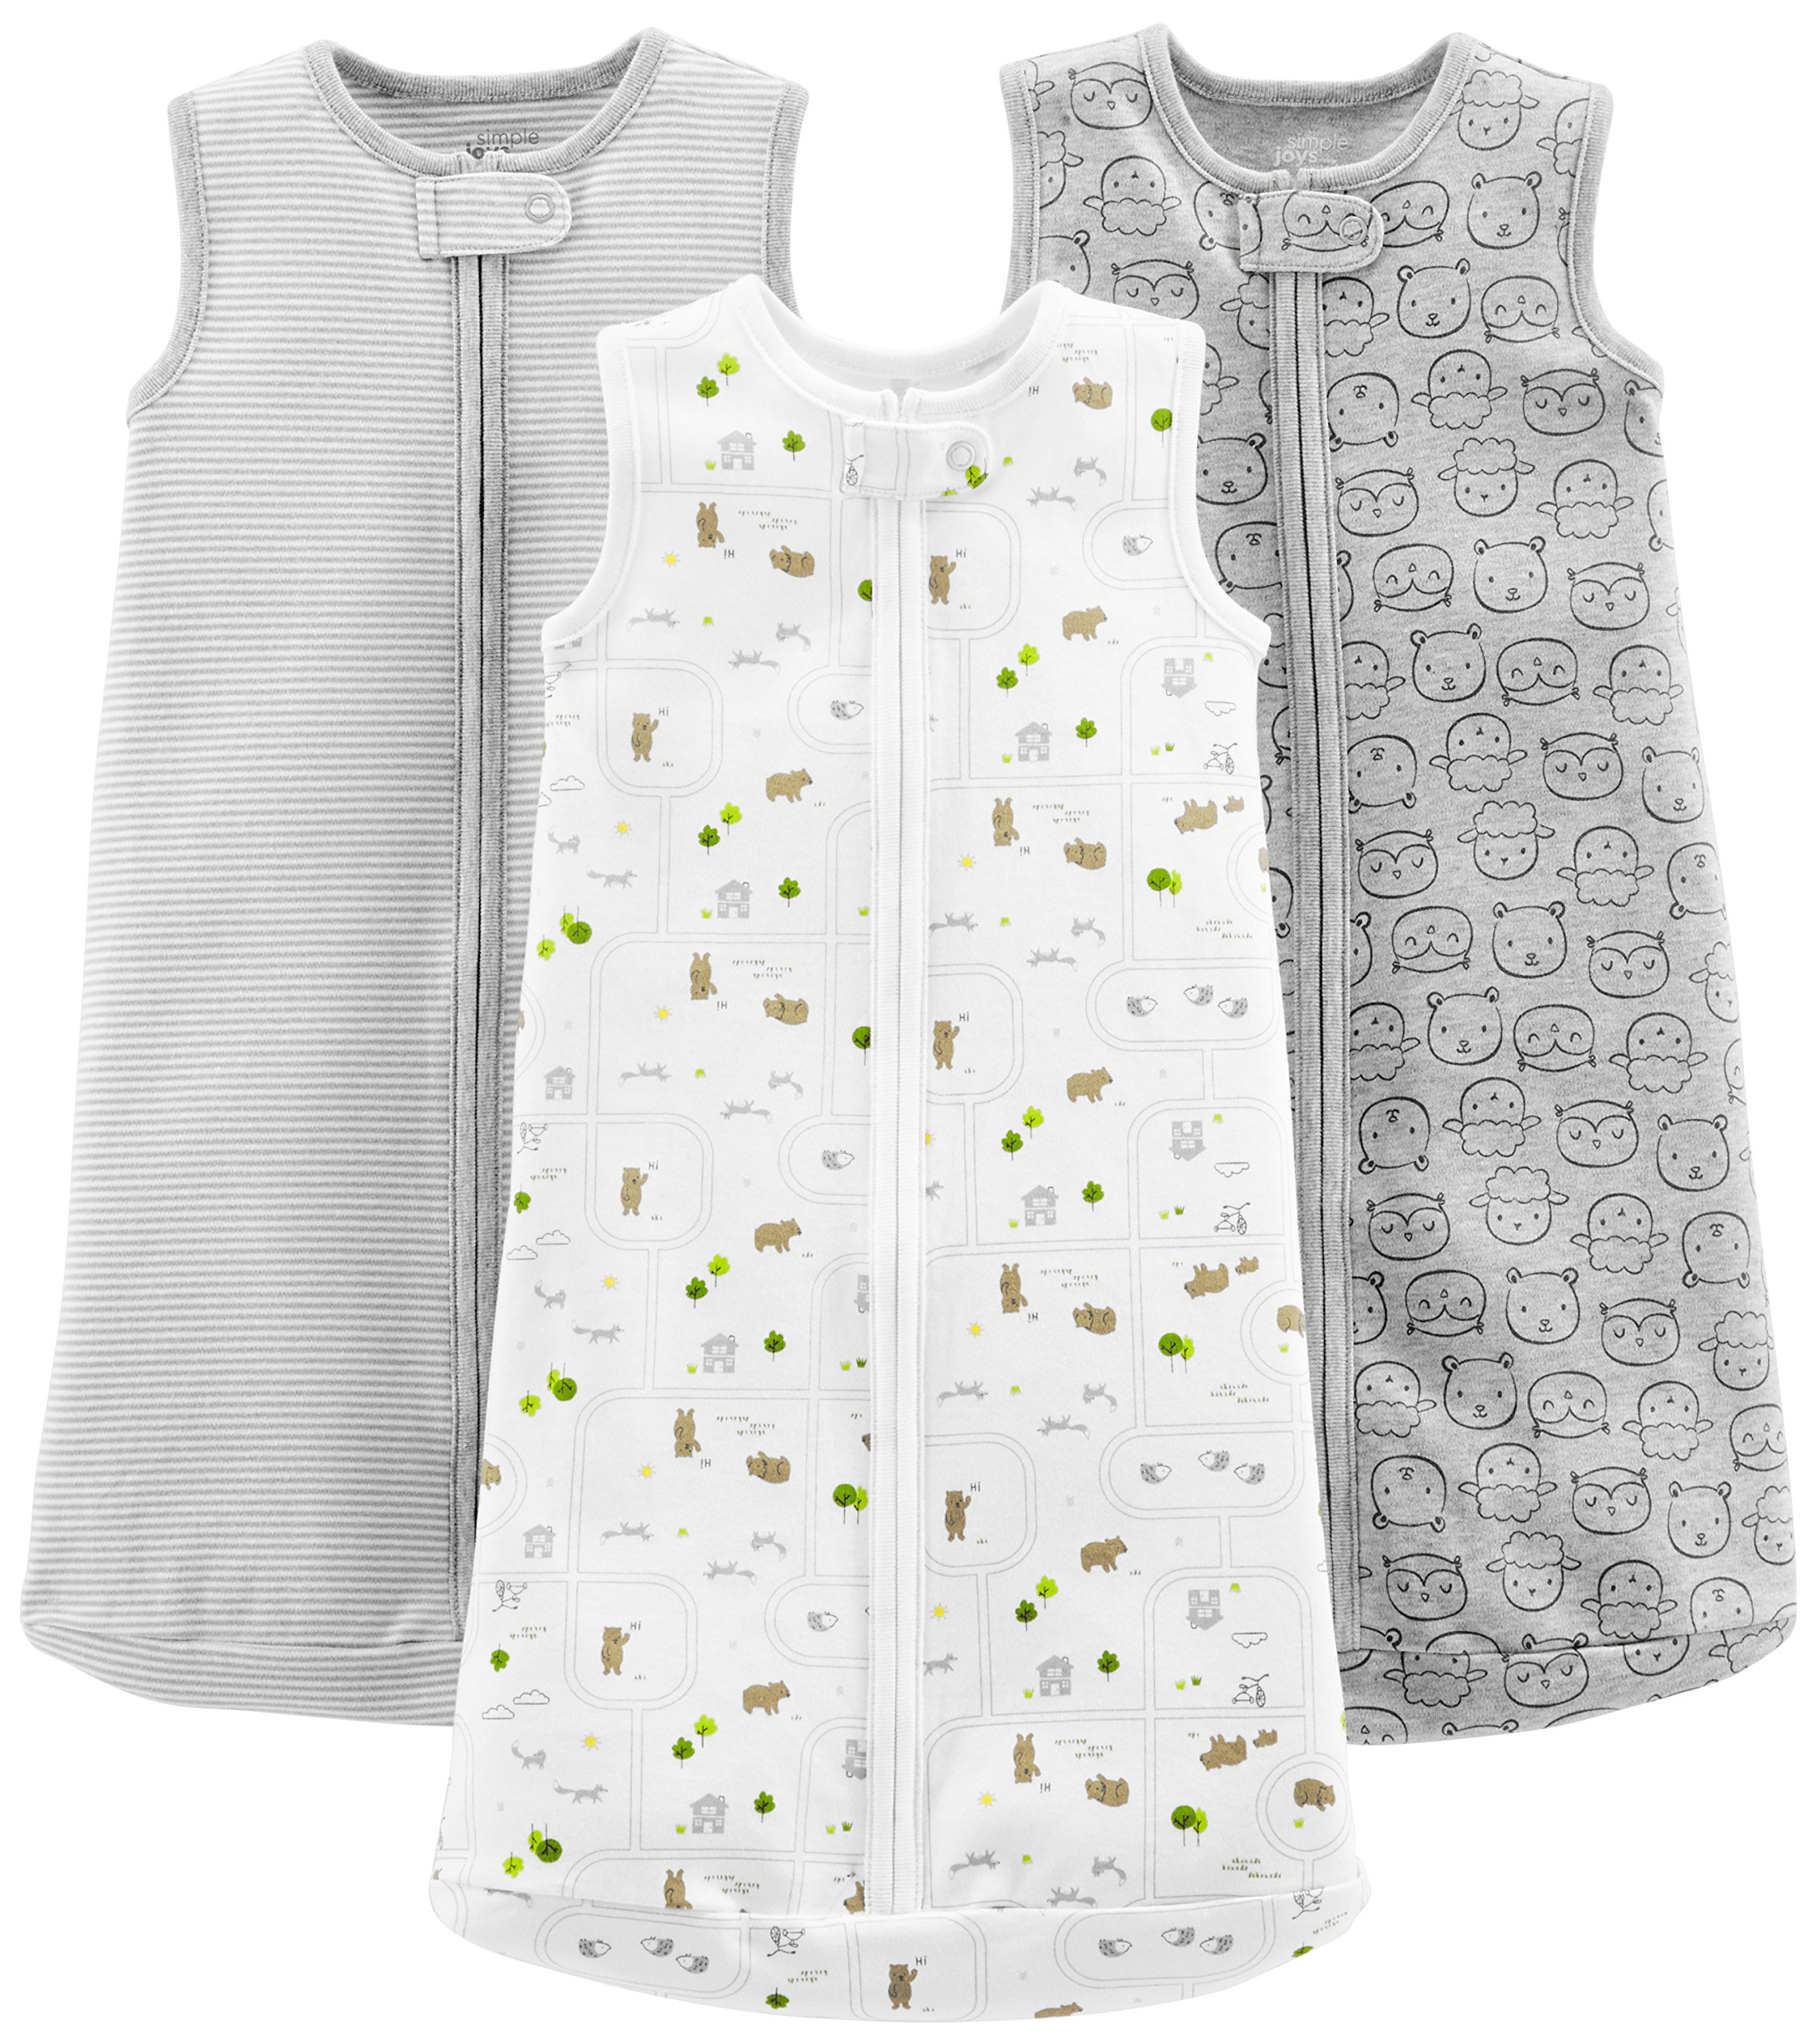 Simple Joys by Carter's Baby 3-Pack Cotton Sleeveless Sleepbag, Gray Stripes, Gray Animals Green, White, Small: 0-3 Months, up to 12.5 Lbs by Simple Joys by Carter's